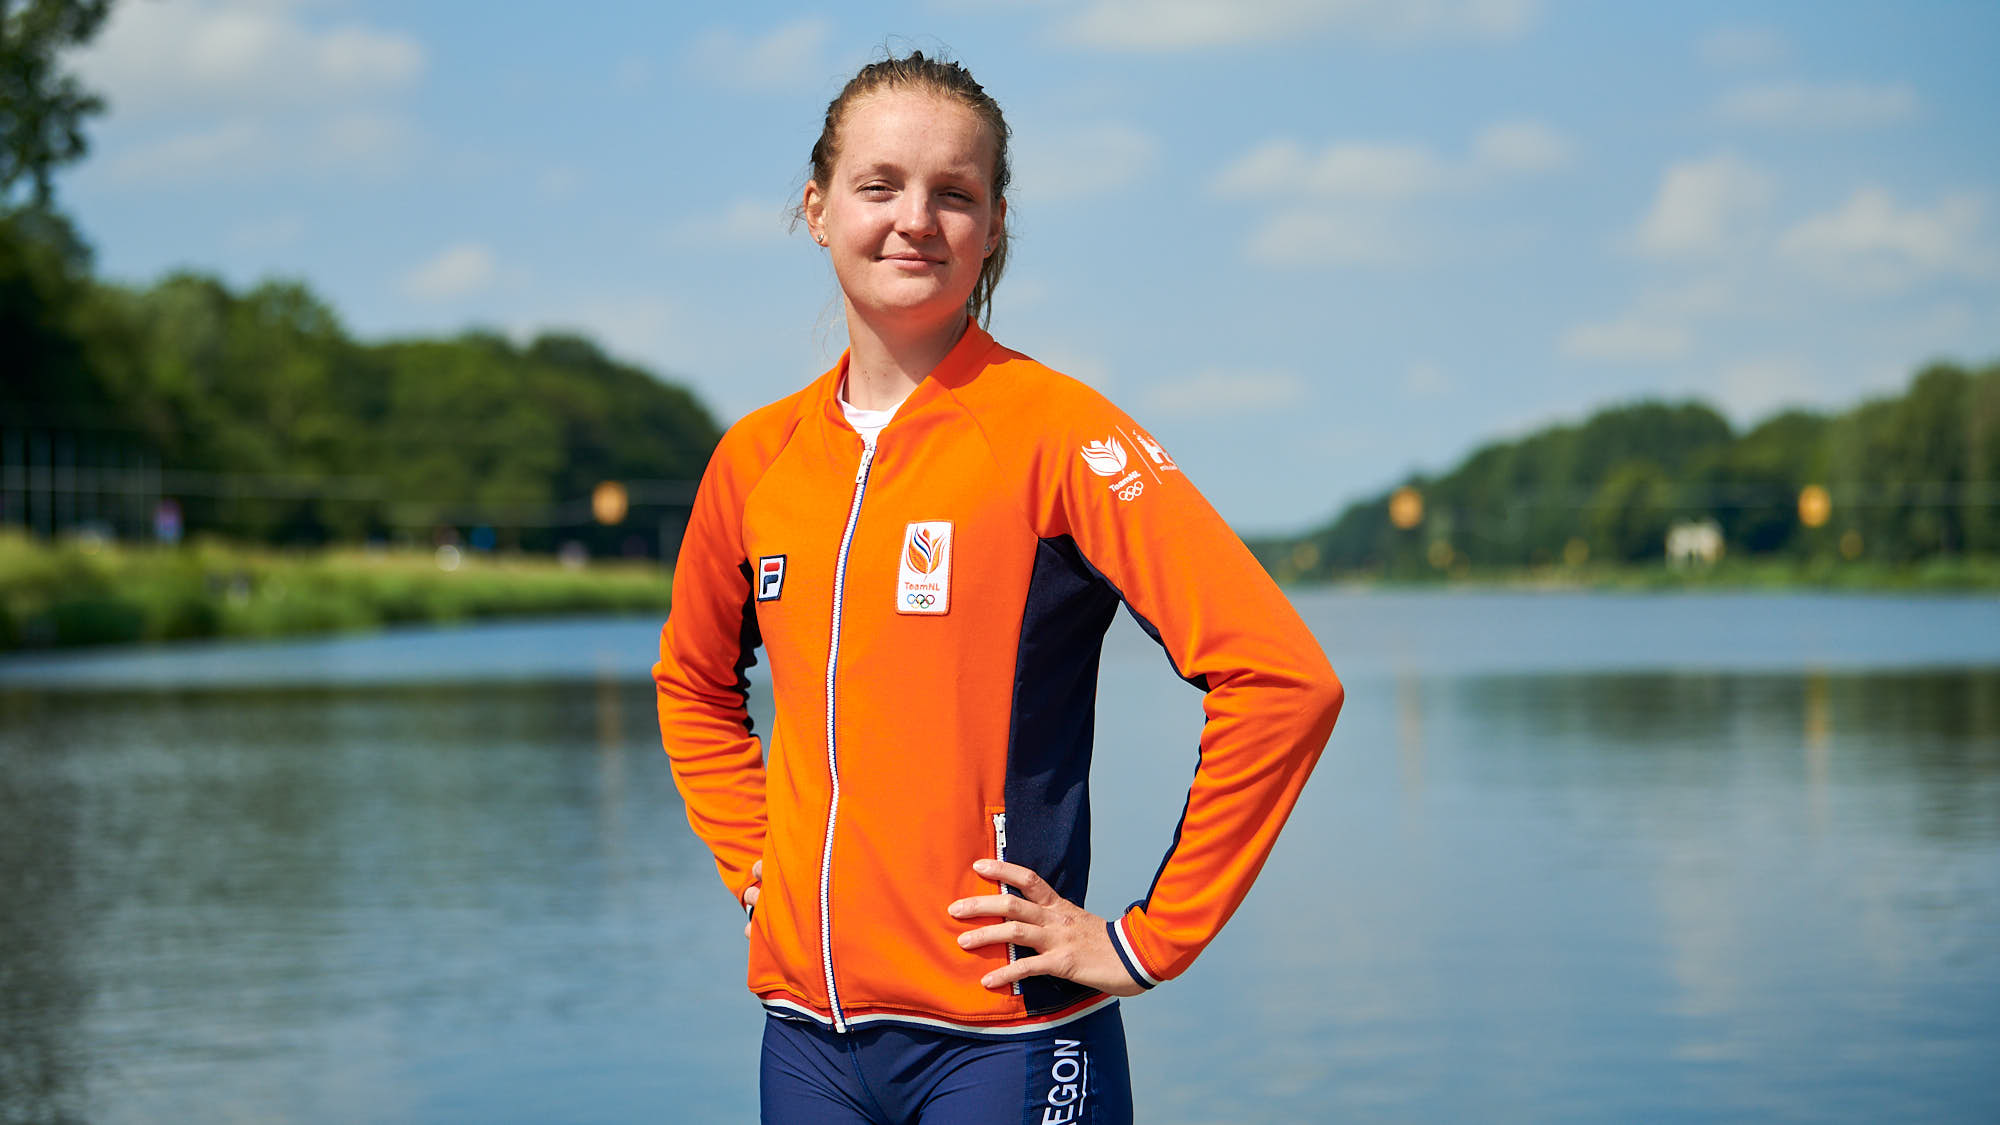 Portrait of Dutch top rower Marieke Keijser